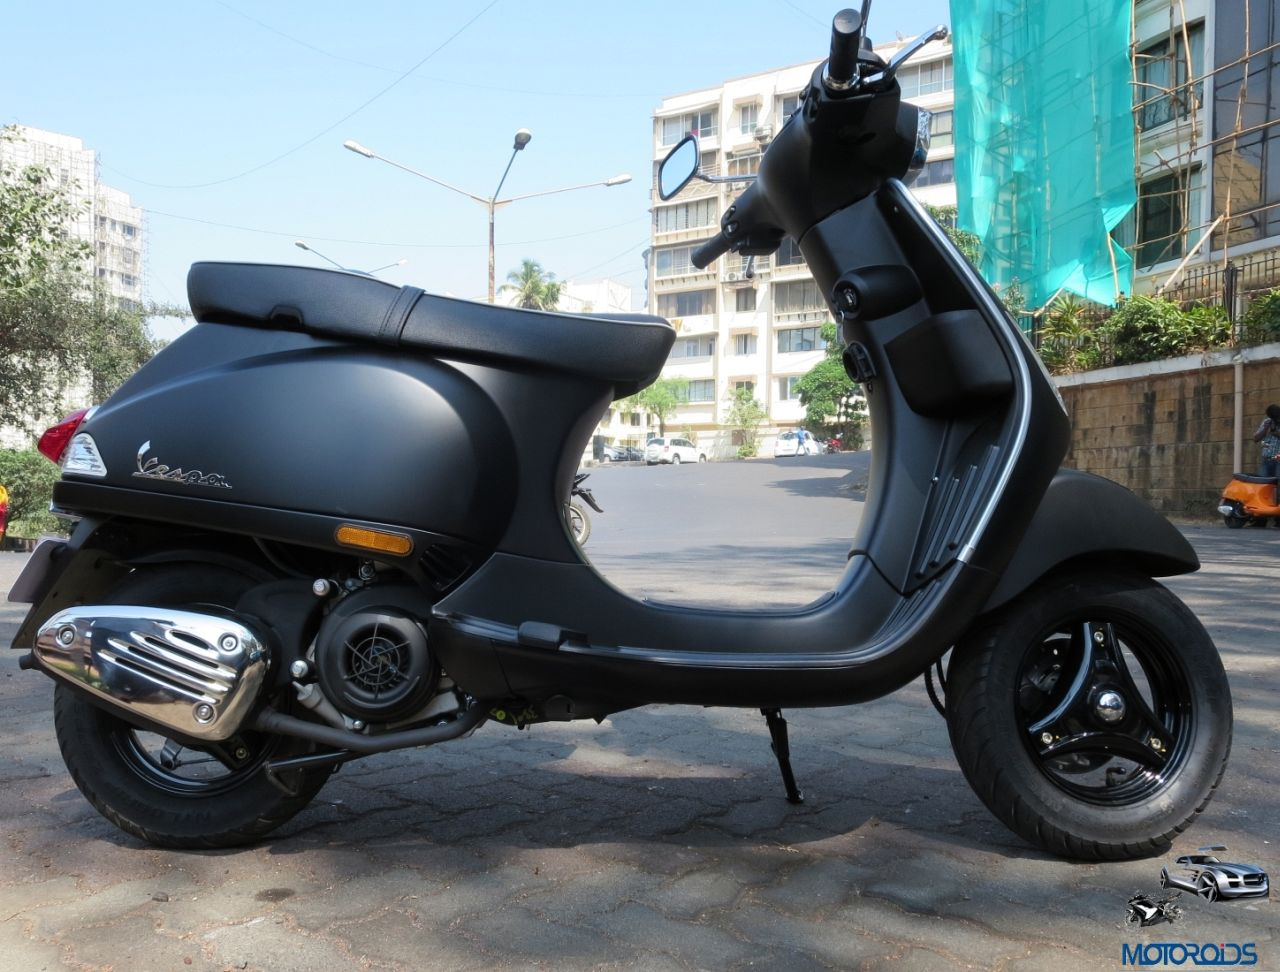 Piaggio Vespa S First Ride Review: Specifications, Images ... Yamaha Motors